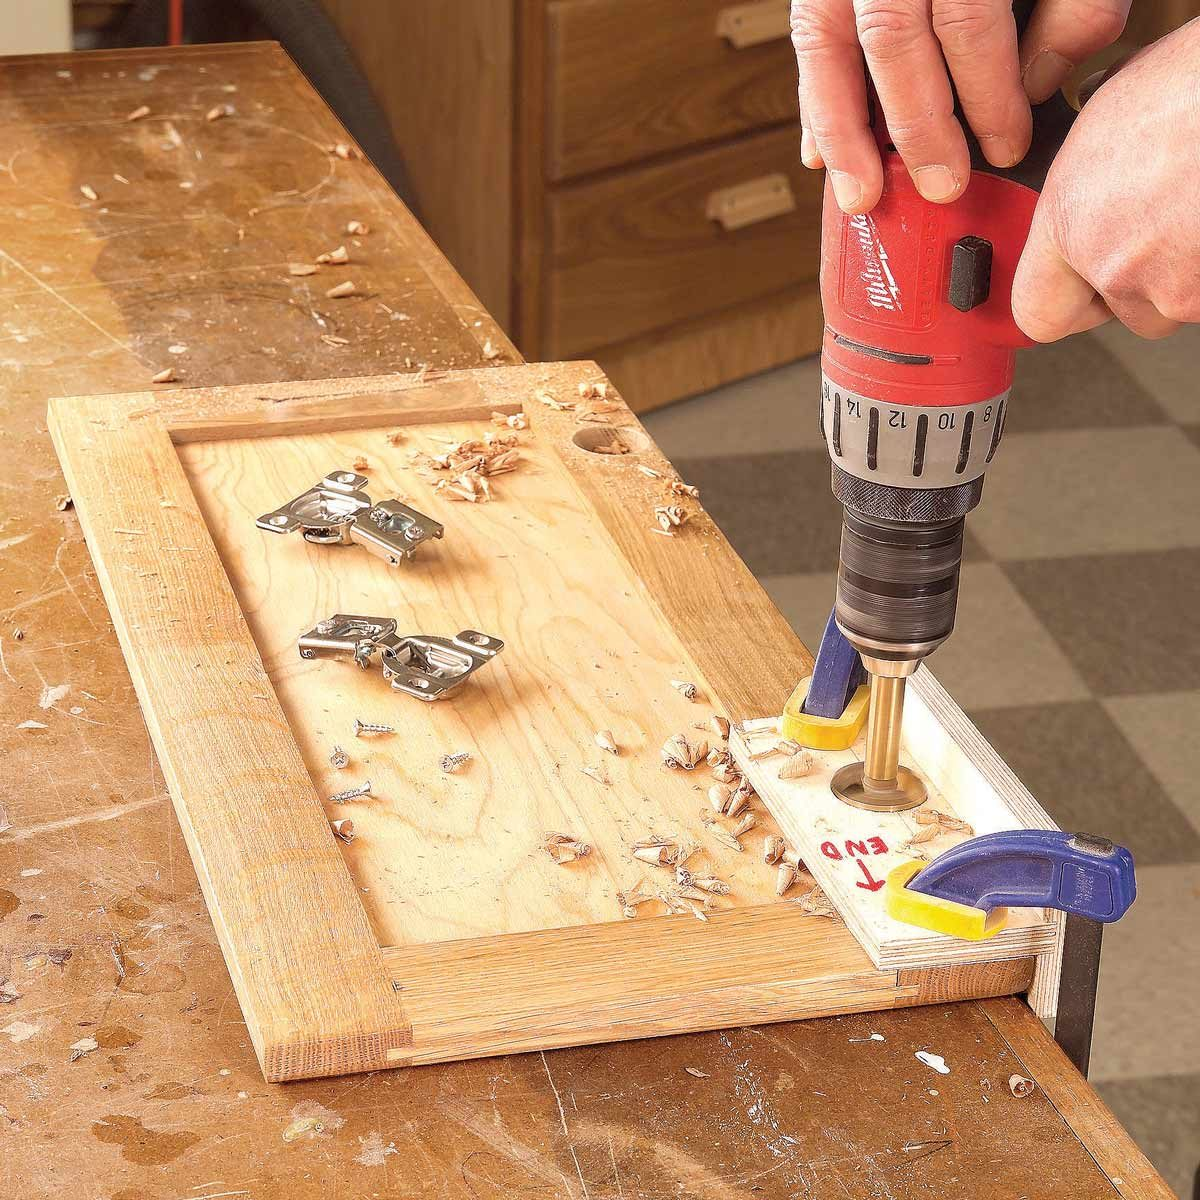 Euro Hinge Drilling Jig The Family Handyman